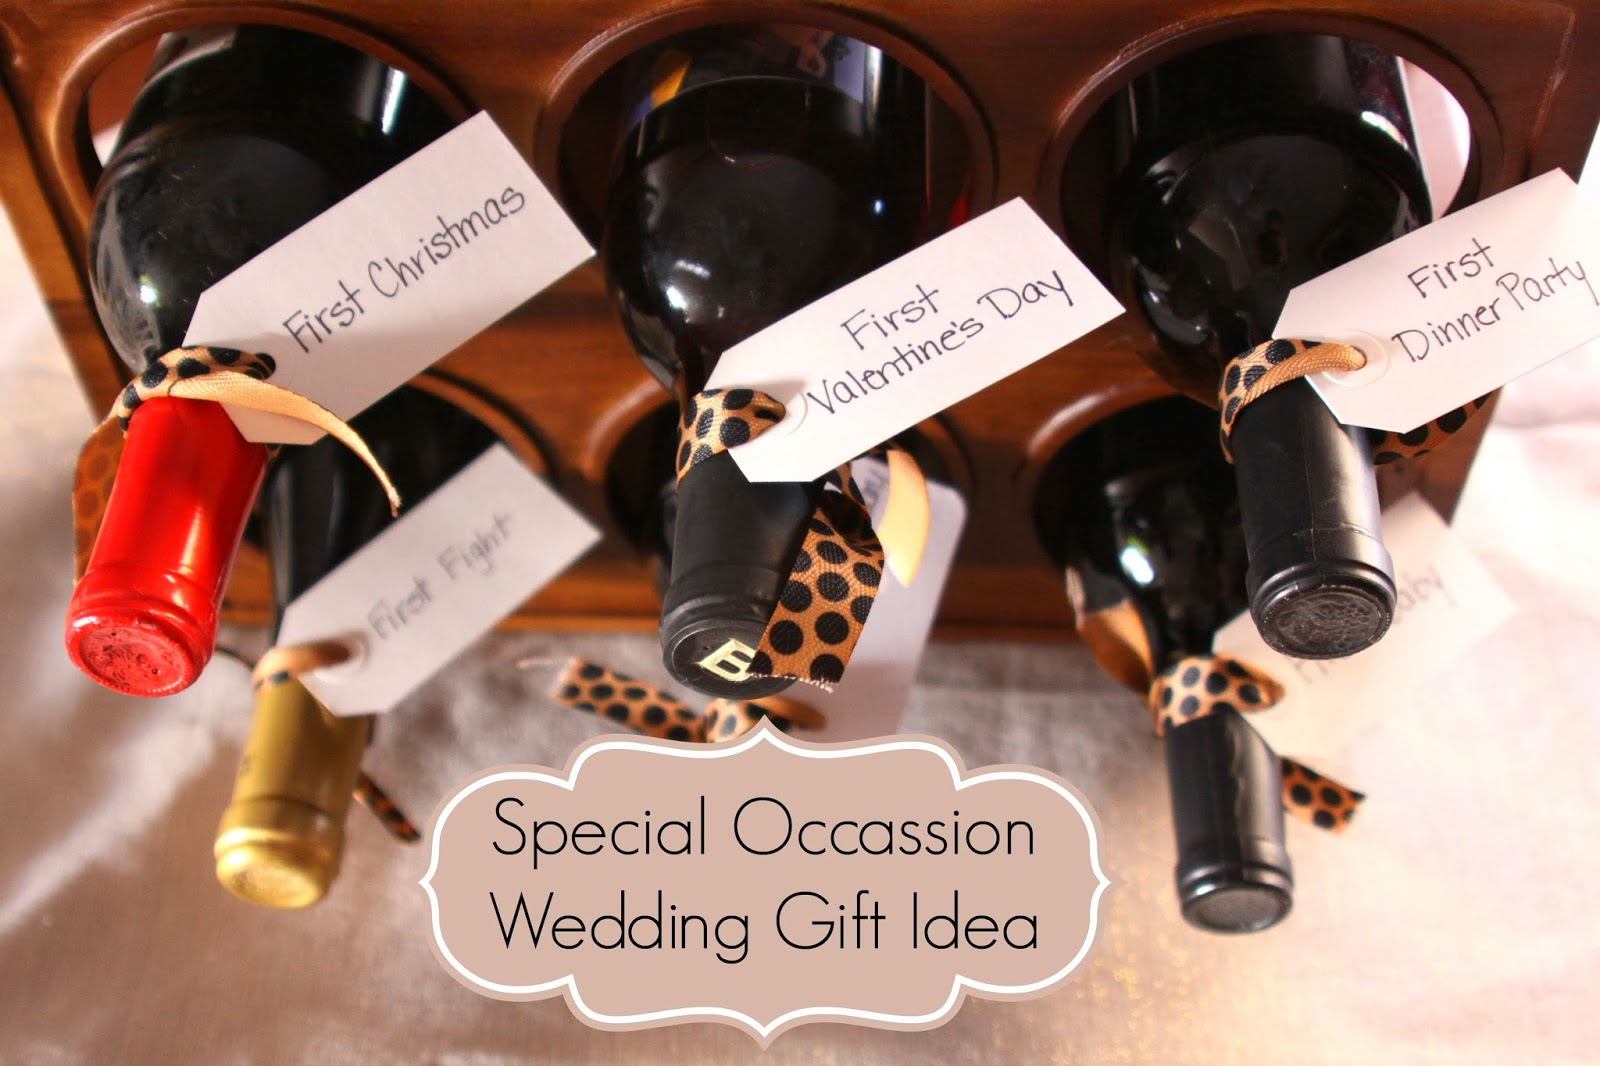 Our Pinteresting Family Special Day Wedding Gift Idea Target